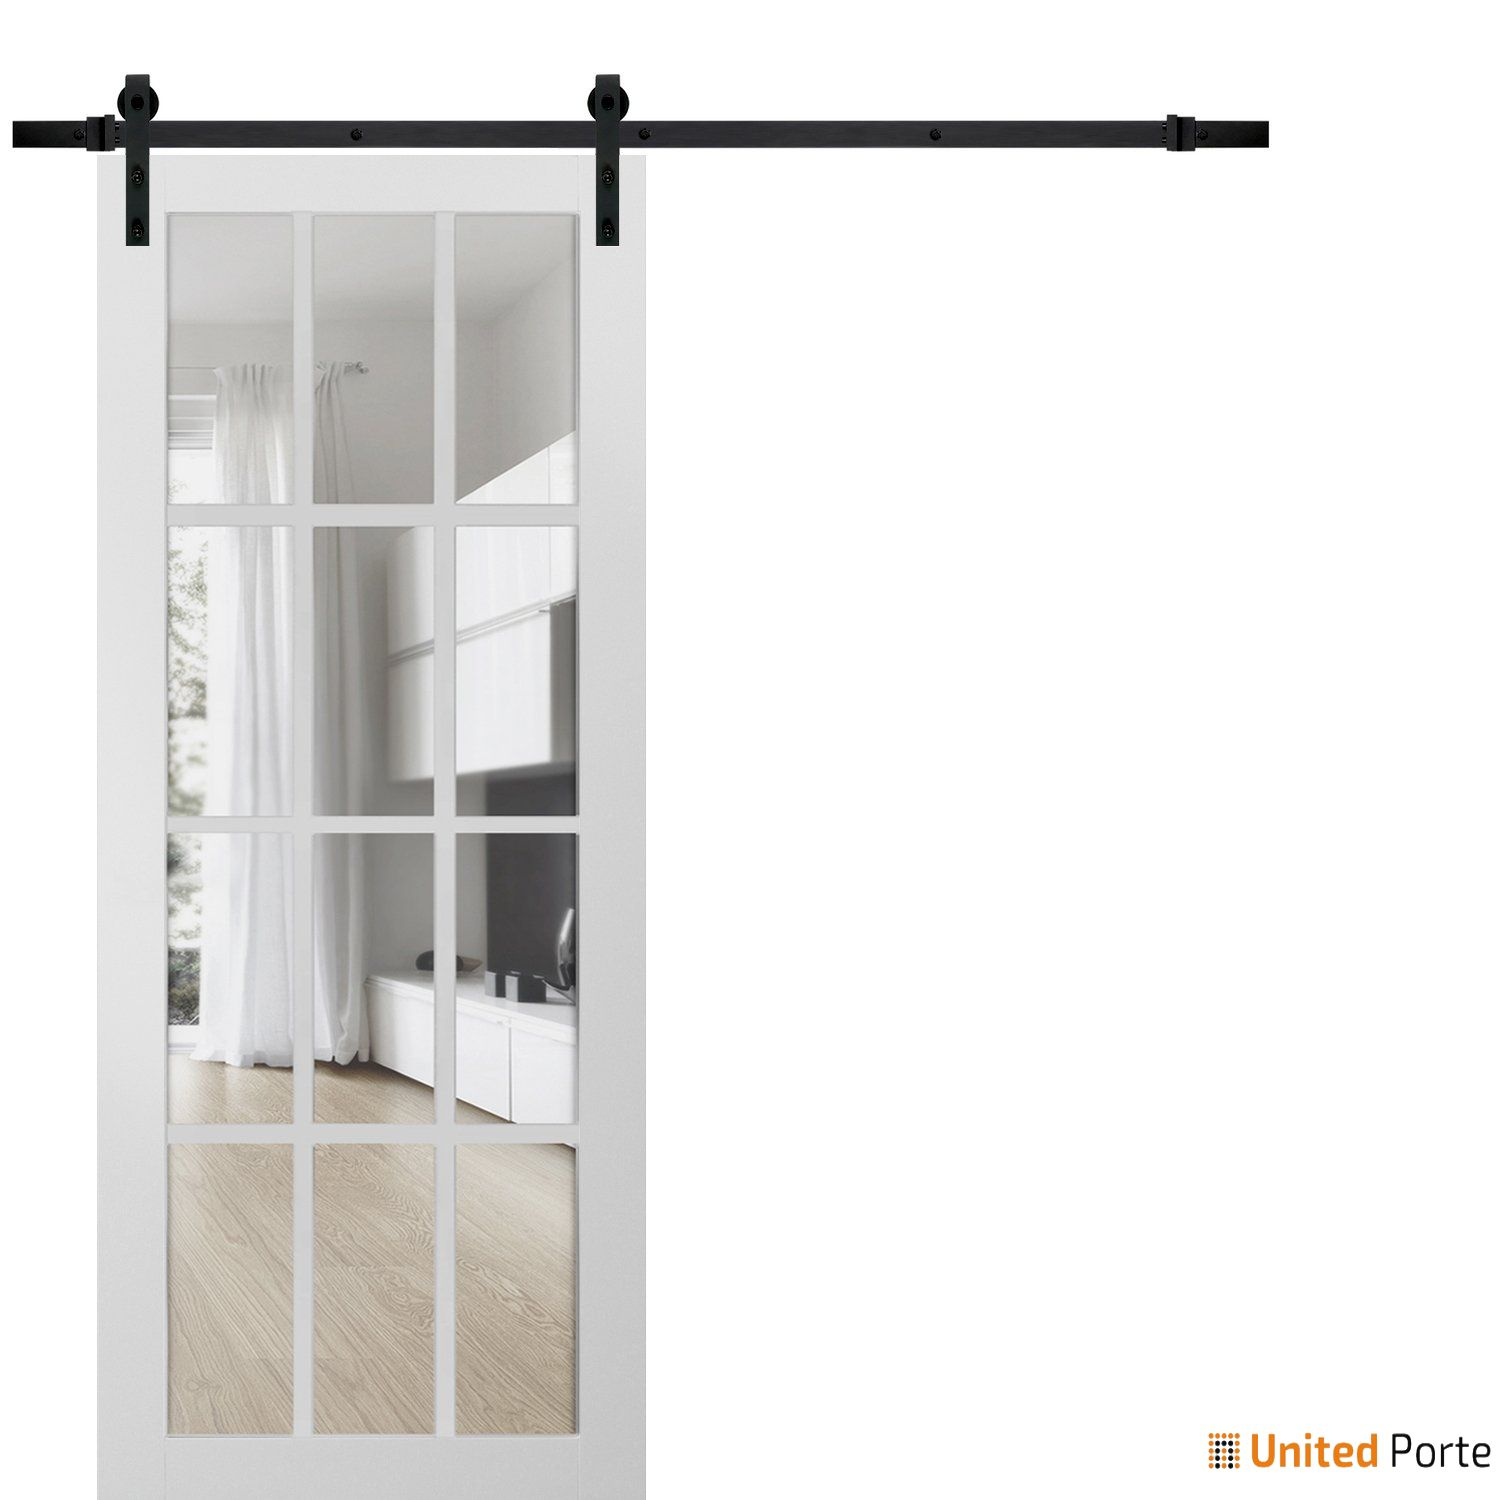 Felicia 3355 Matte White Sturdy Barn Door Clear Glass 12 lites with Black Hardware | Solid Panel Interior Barn Doors